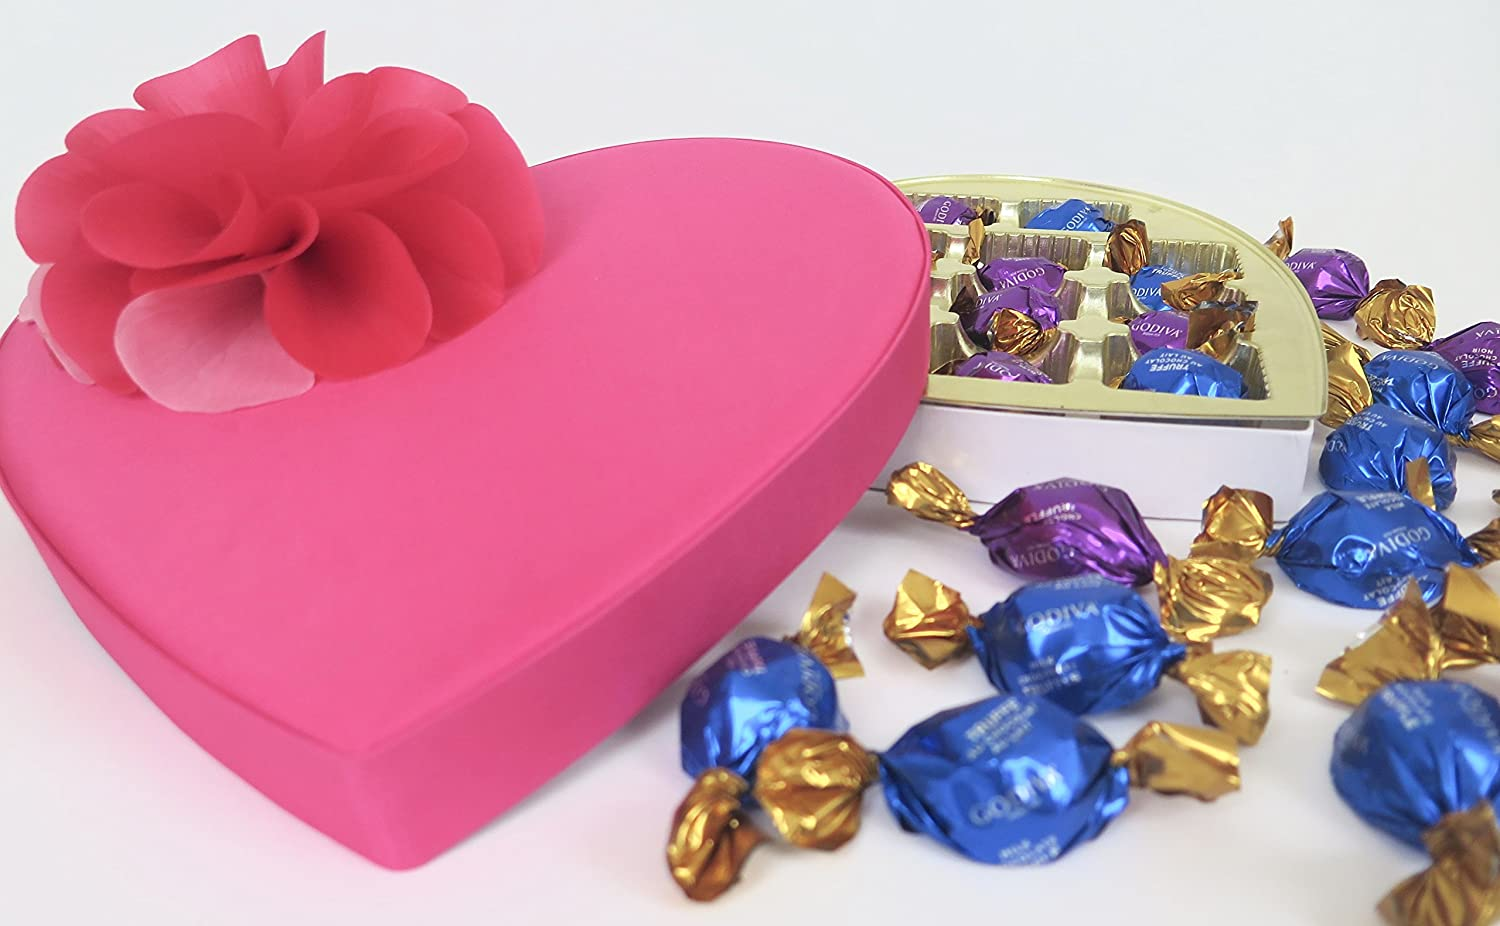 Amazon.com : Godiva Chocolate truffles in a pink flower heart gift ...